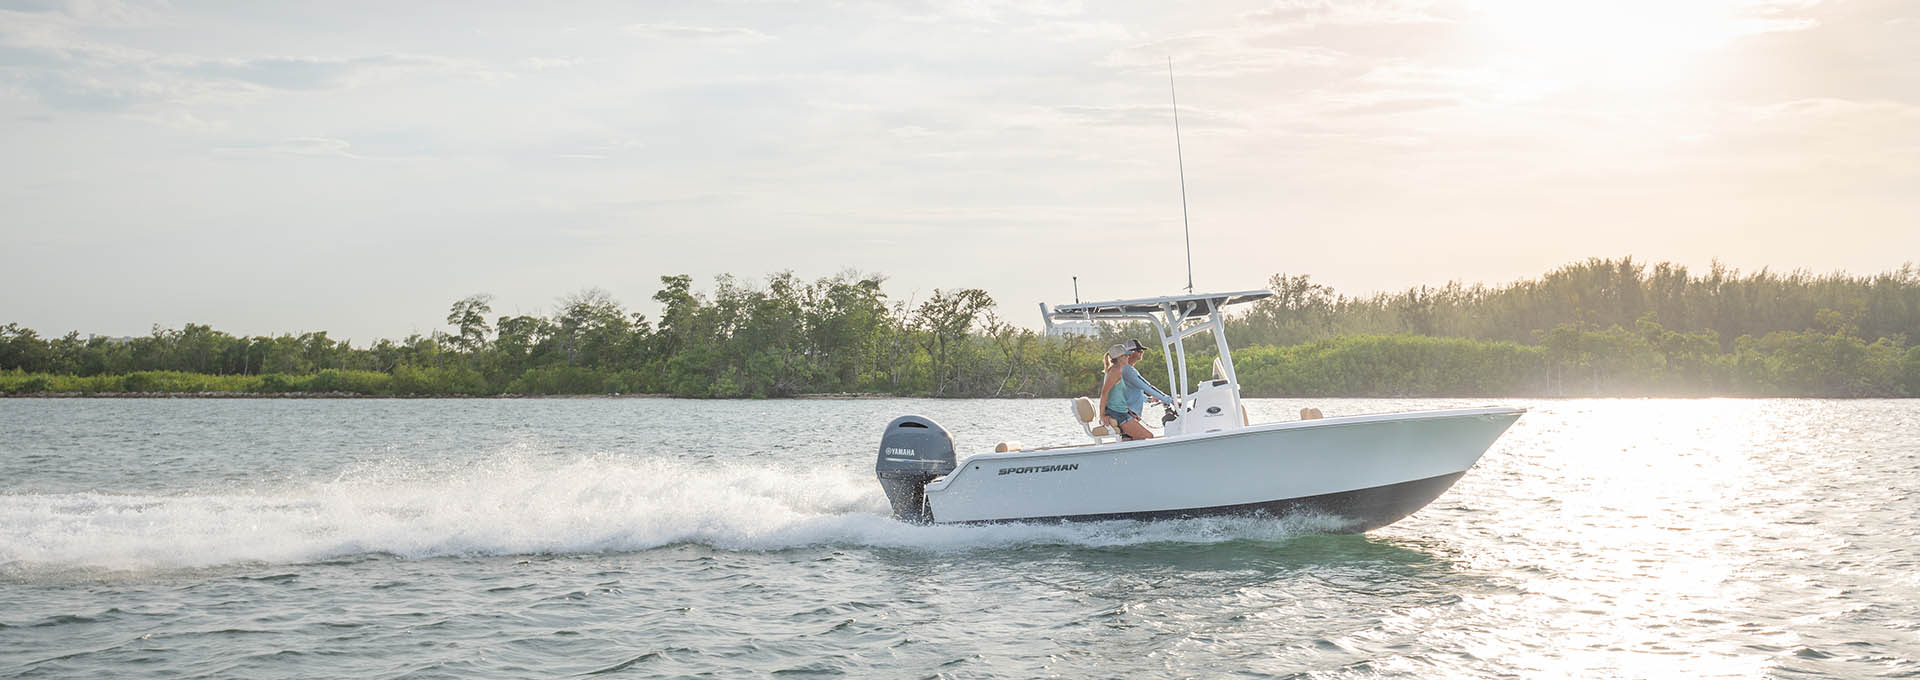 Slide show of images of the Heritage 211 Center Console. This is image number 1.